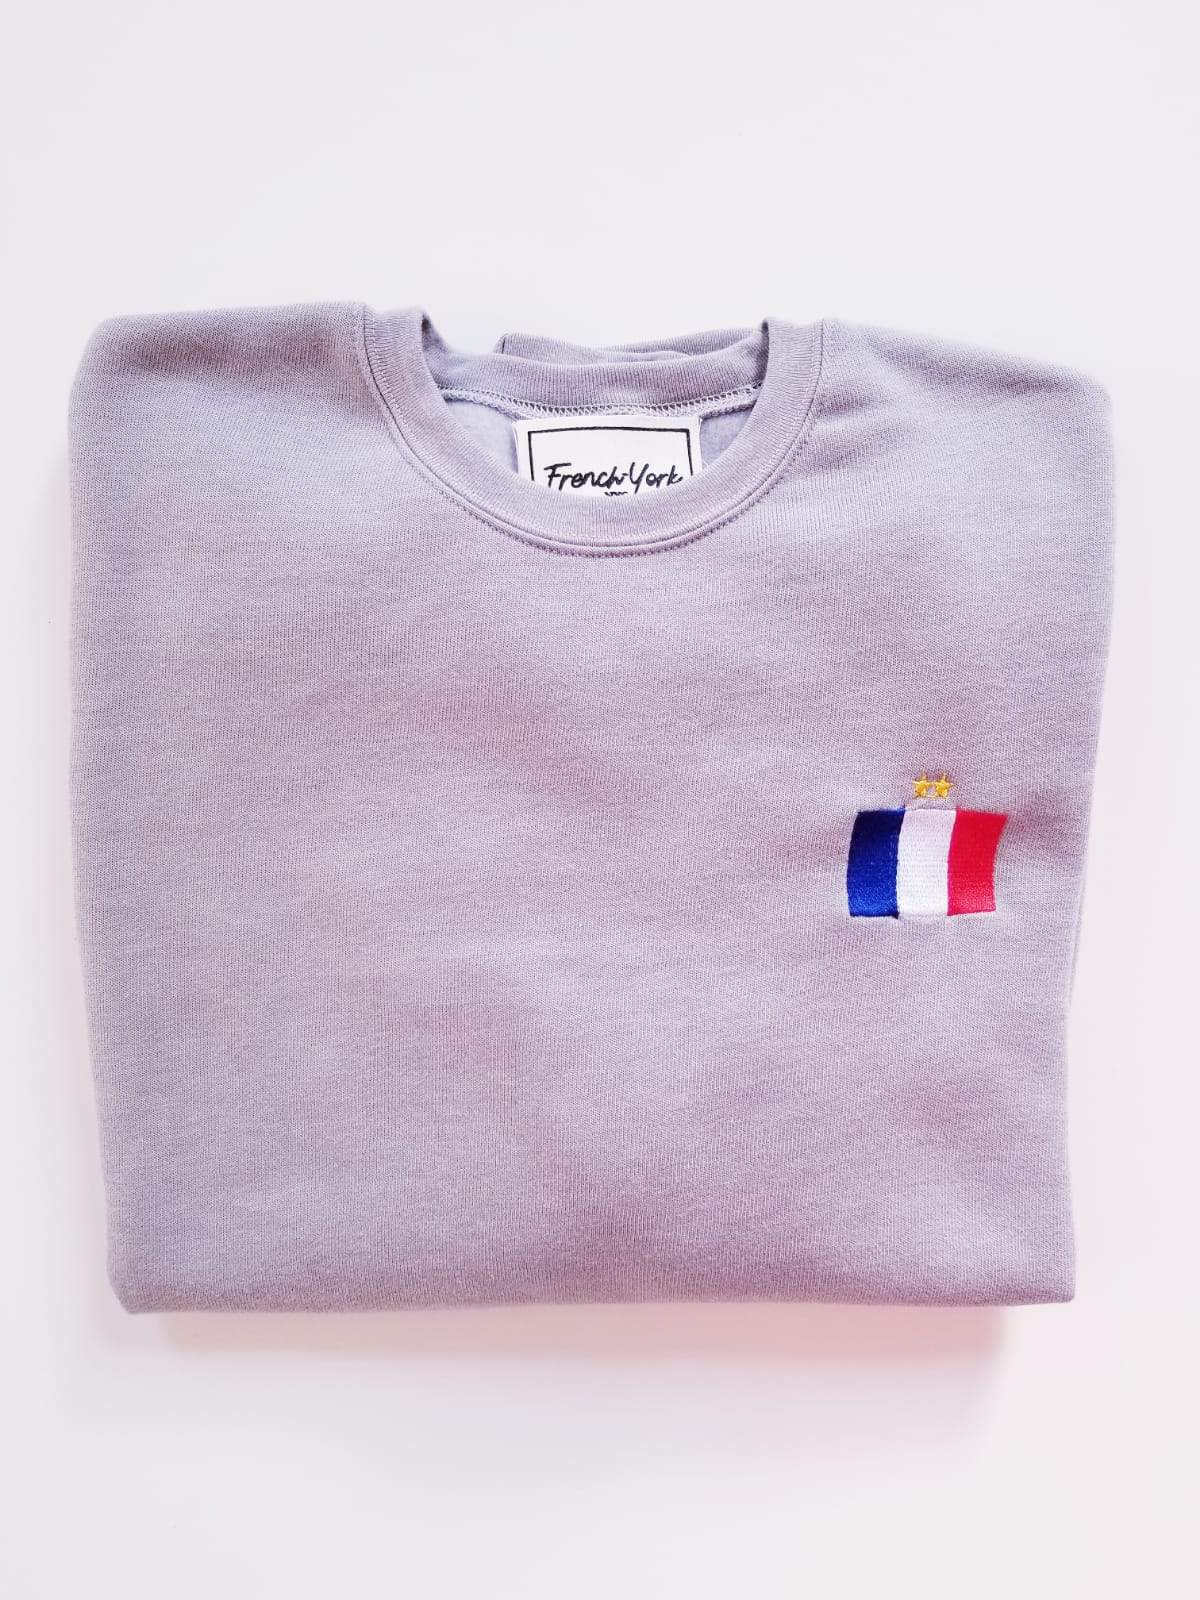 Women Sweater French flag